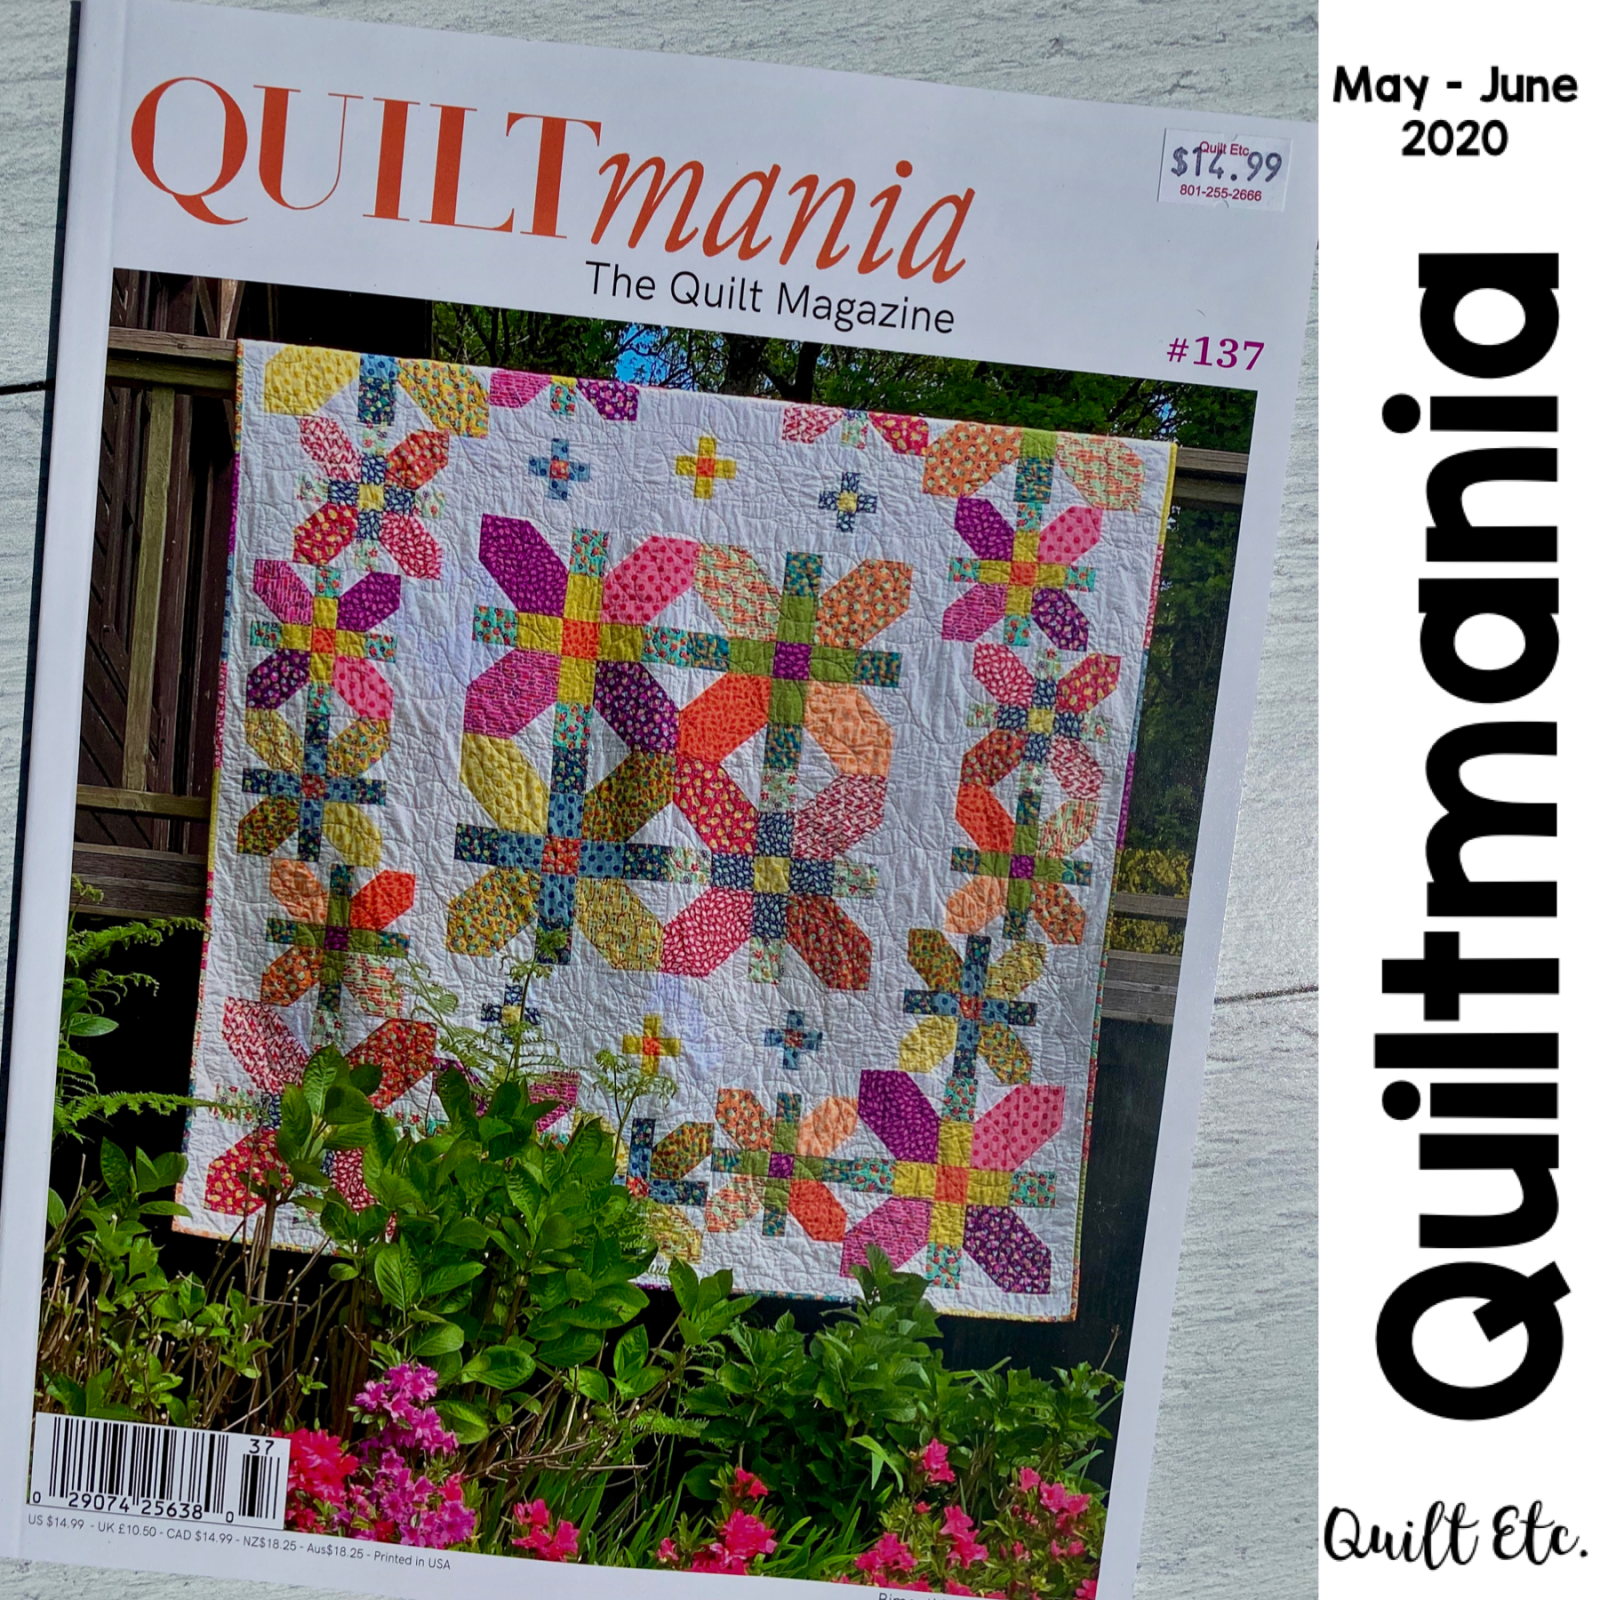 Quiltmania Magazine 137 May - June 2020